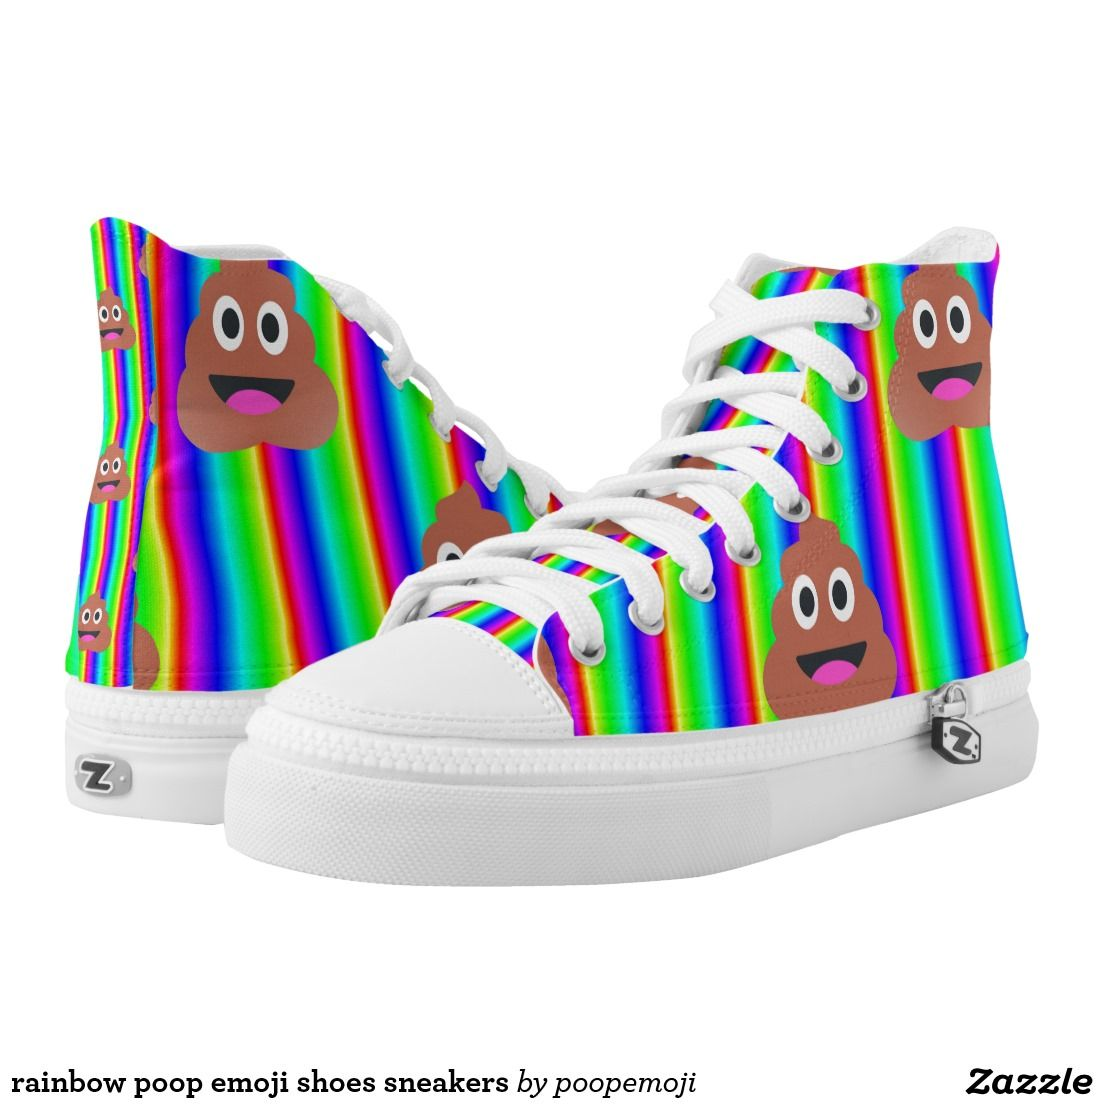 rainbow poop emoji shoes sneakers